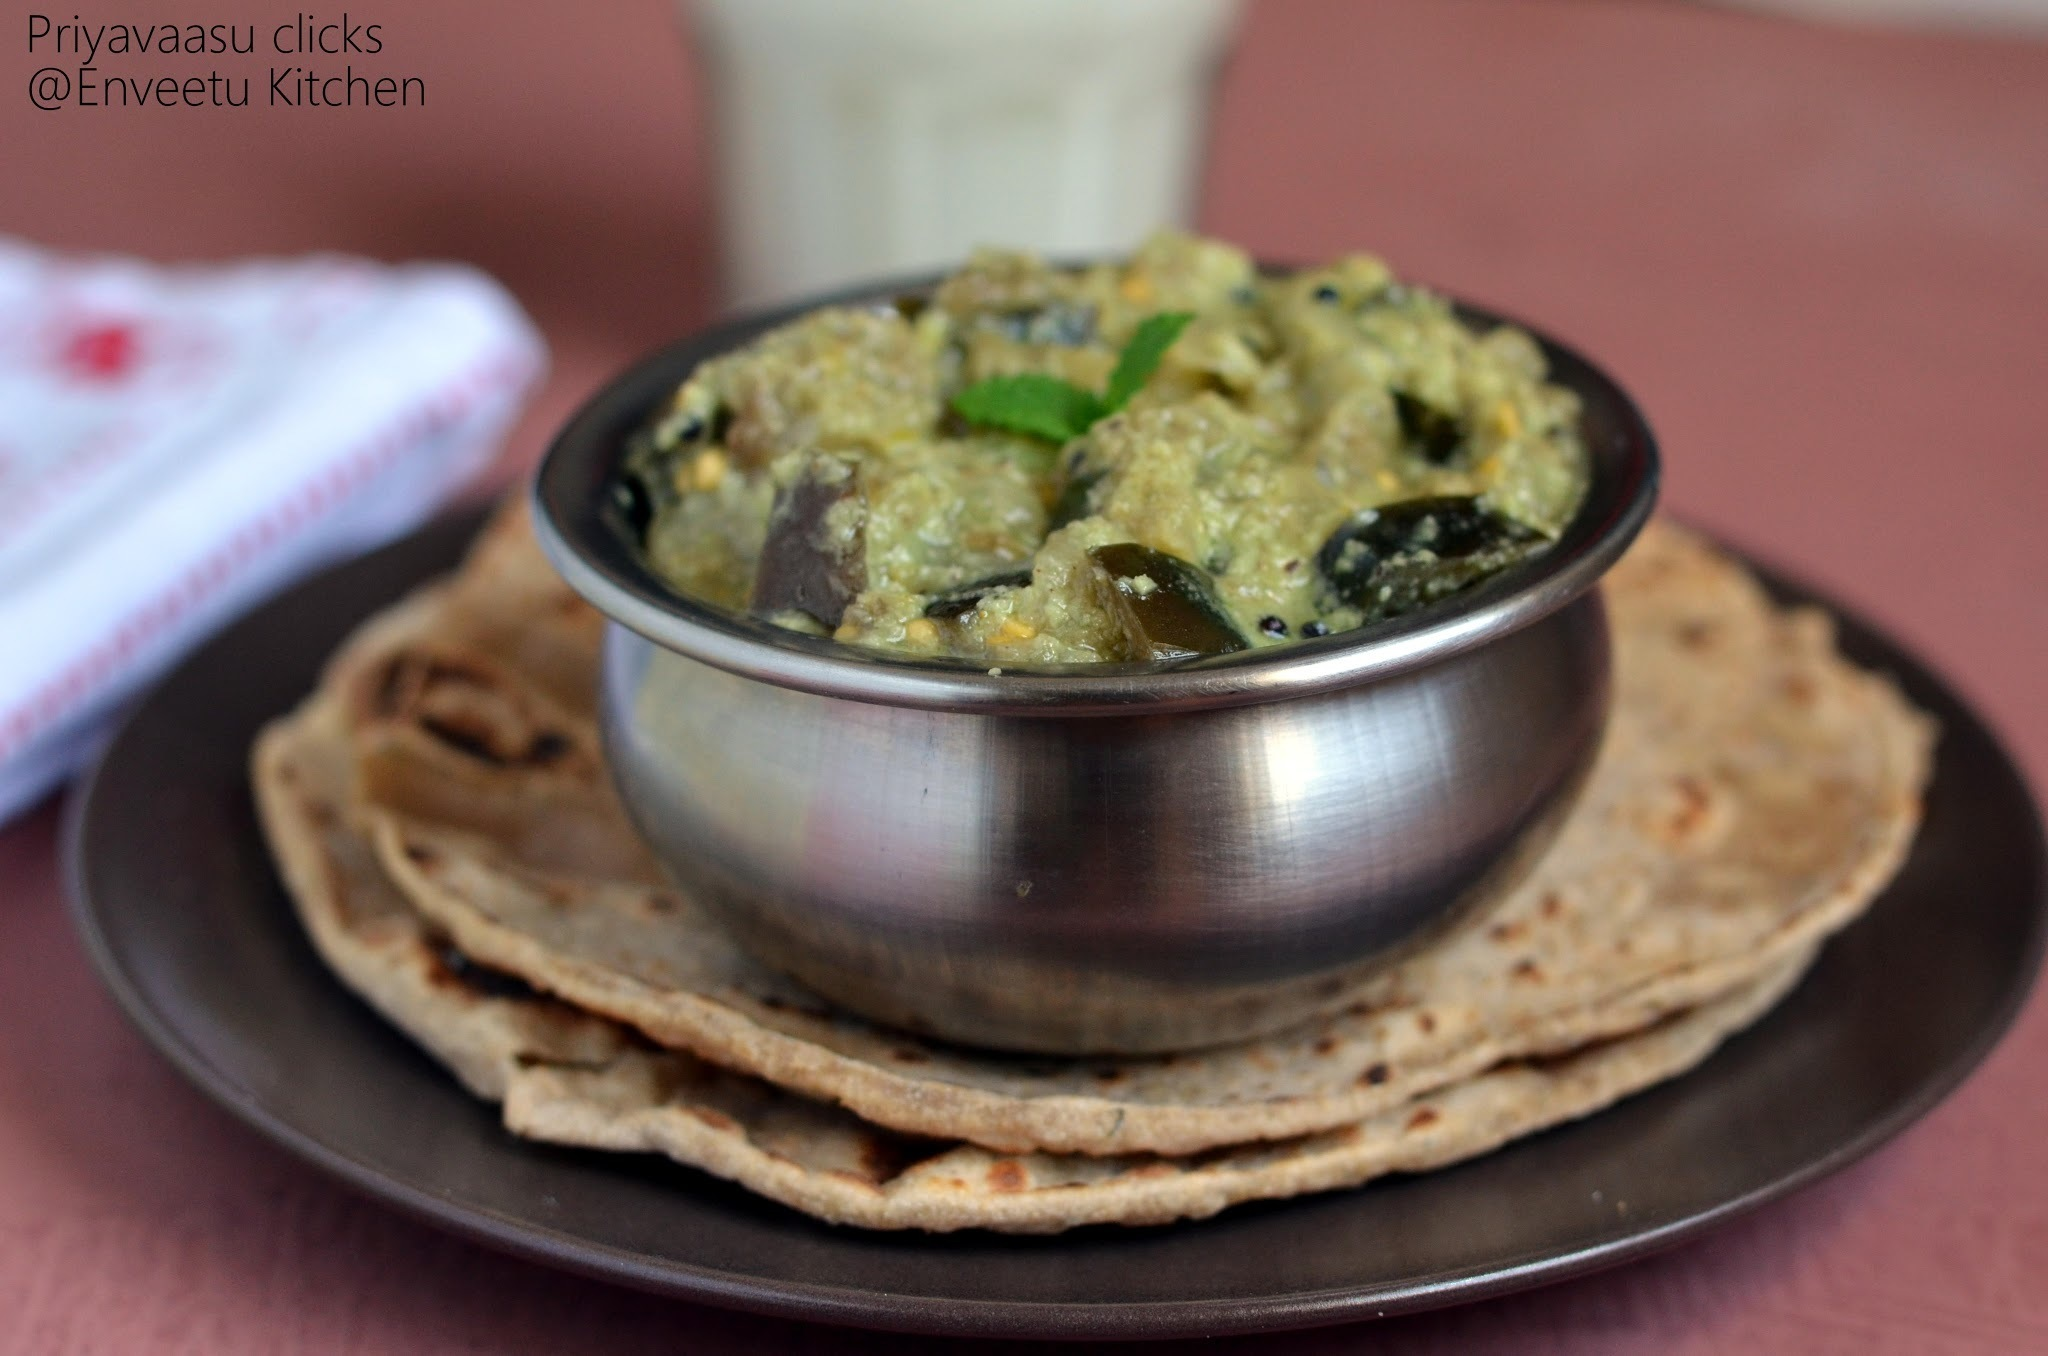 Upponkai/Brinjal and coconut curry - Side dish for Chapathi/Roti